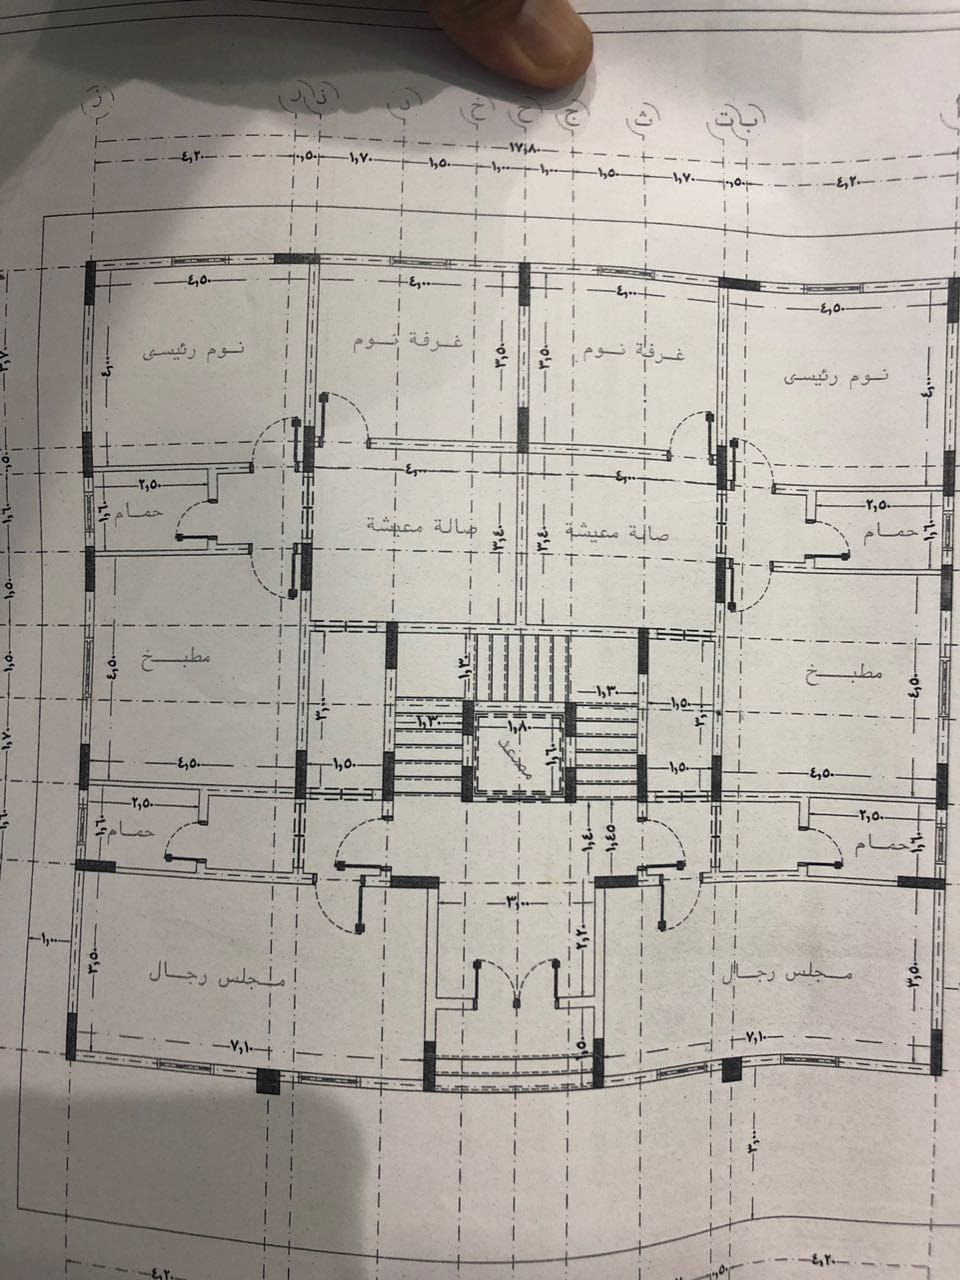 Pin By Mohammad Annan On Architecture Building Plans House Architectural Floor Plans House Plans